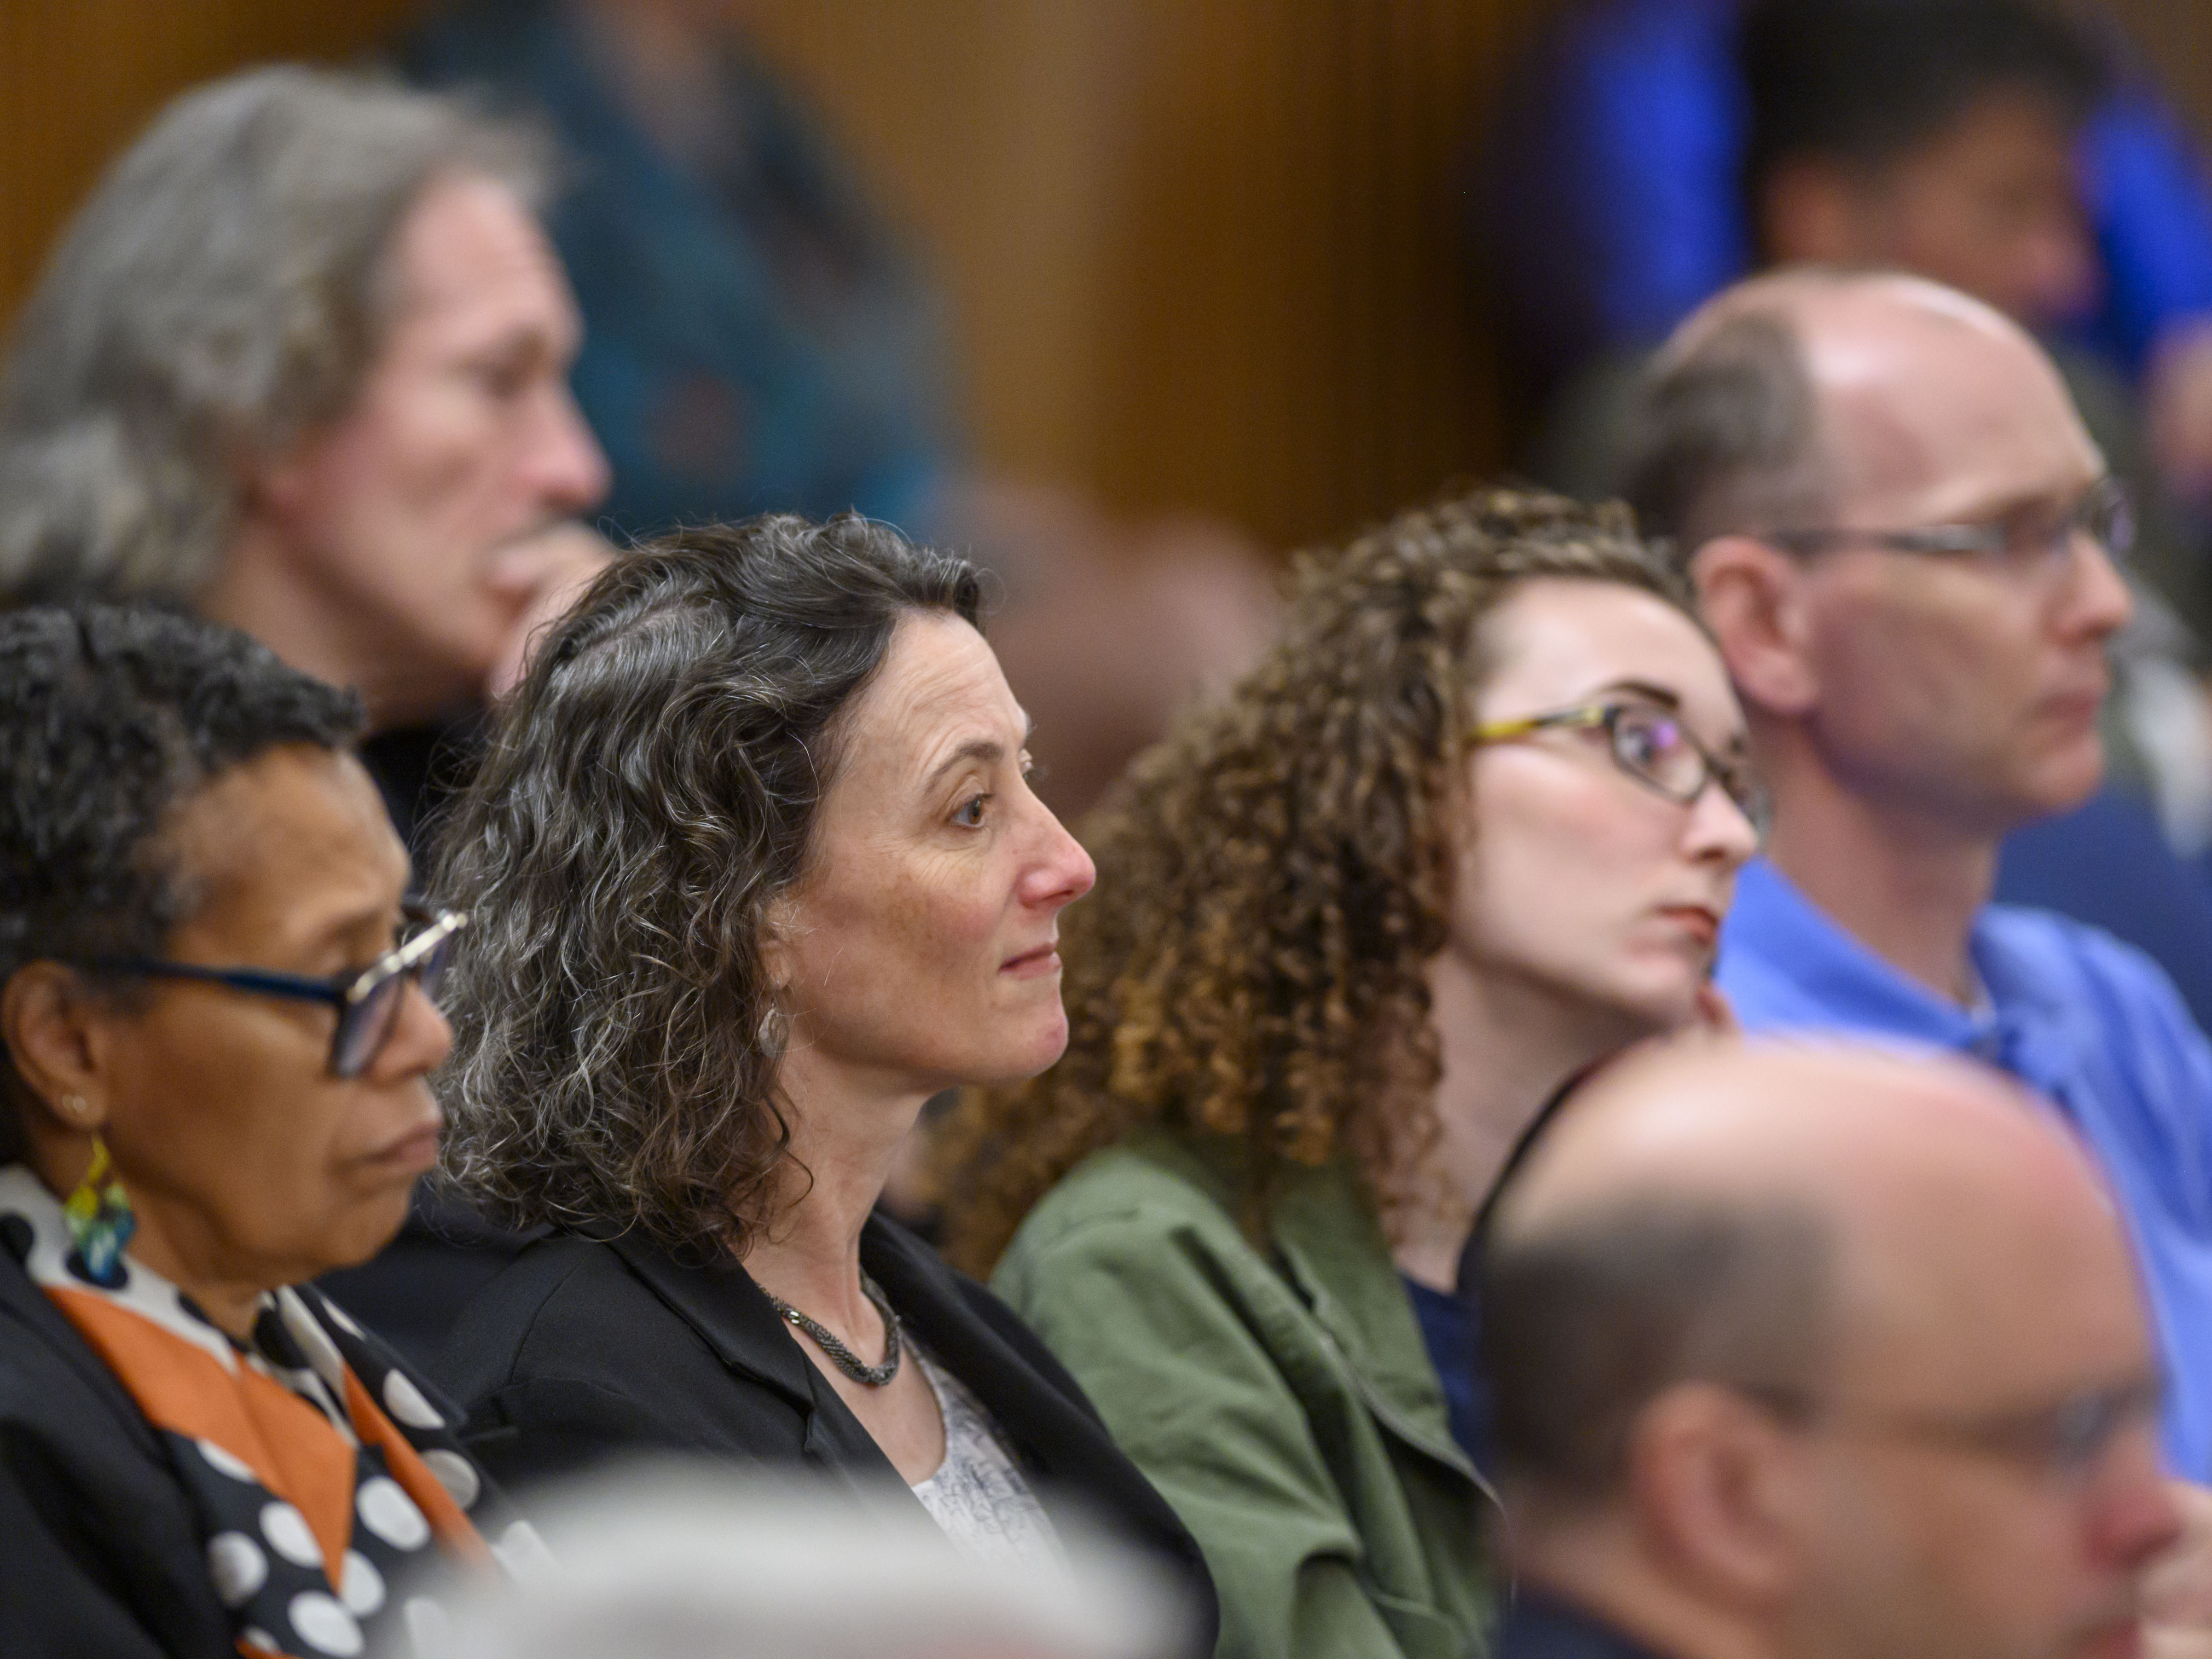 """Audience members listen to panelists discuss """"Faith and the Faithful in the 2020 Campaign."""""""